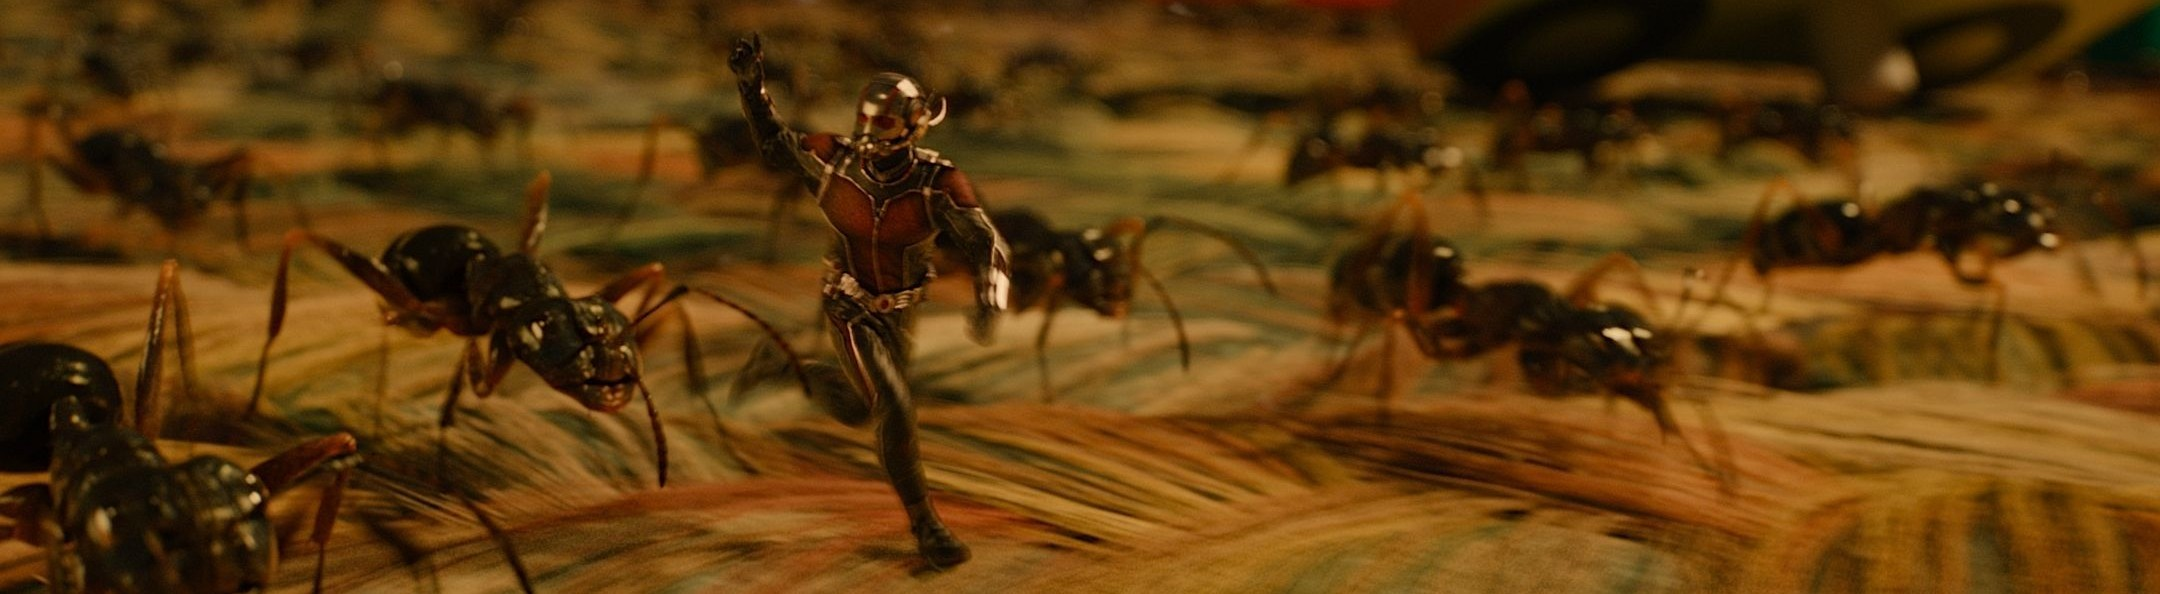 ant-man-microverse-photo-ants-on-carpet[1]